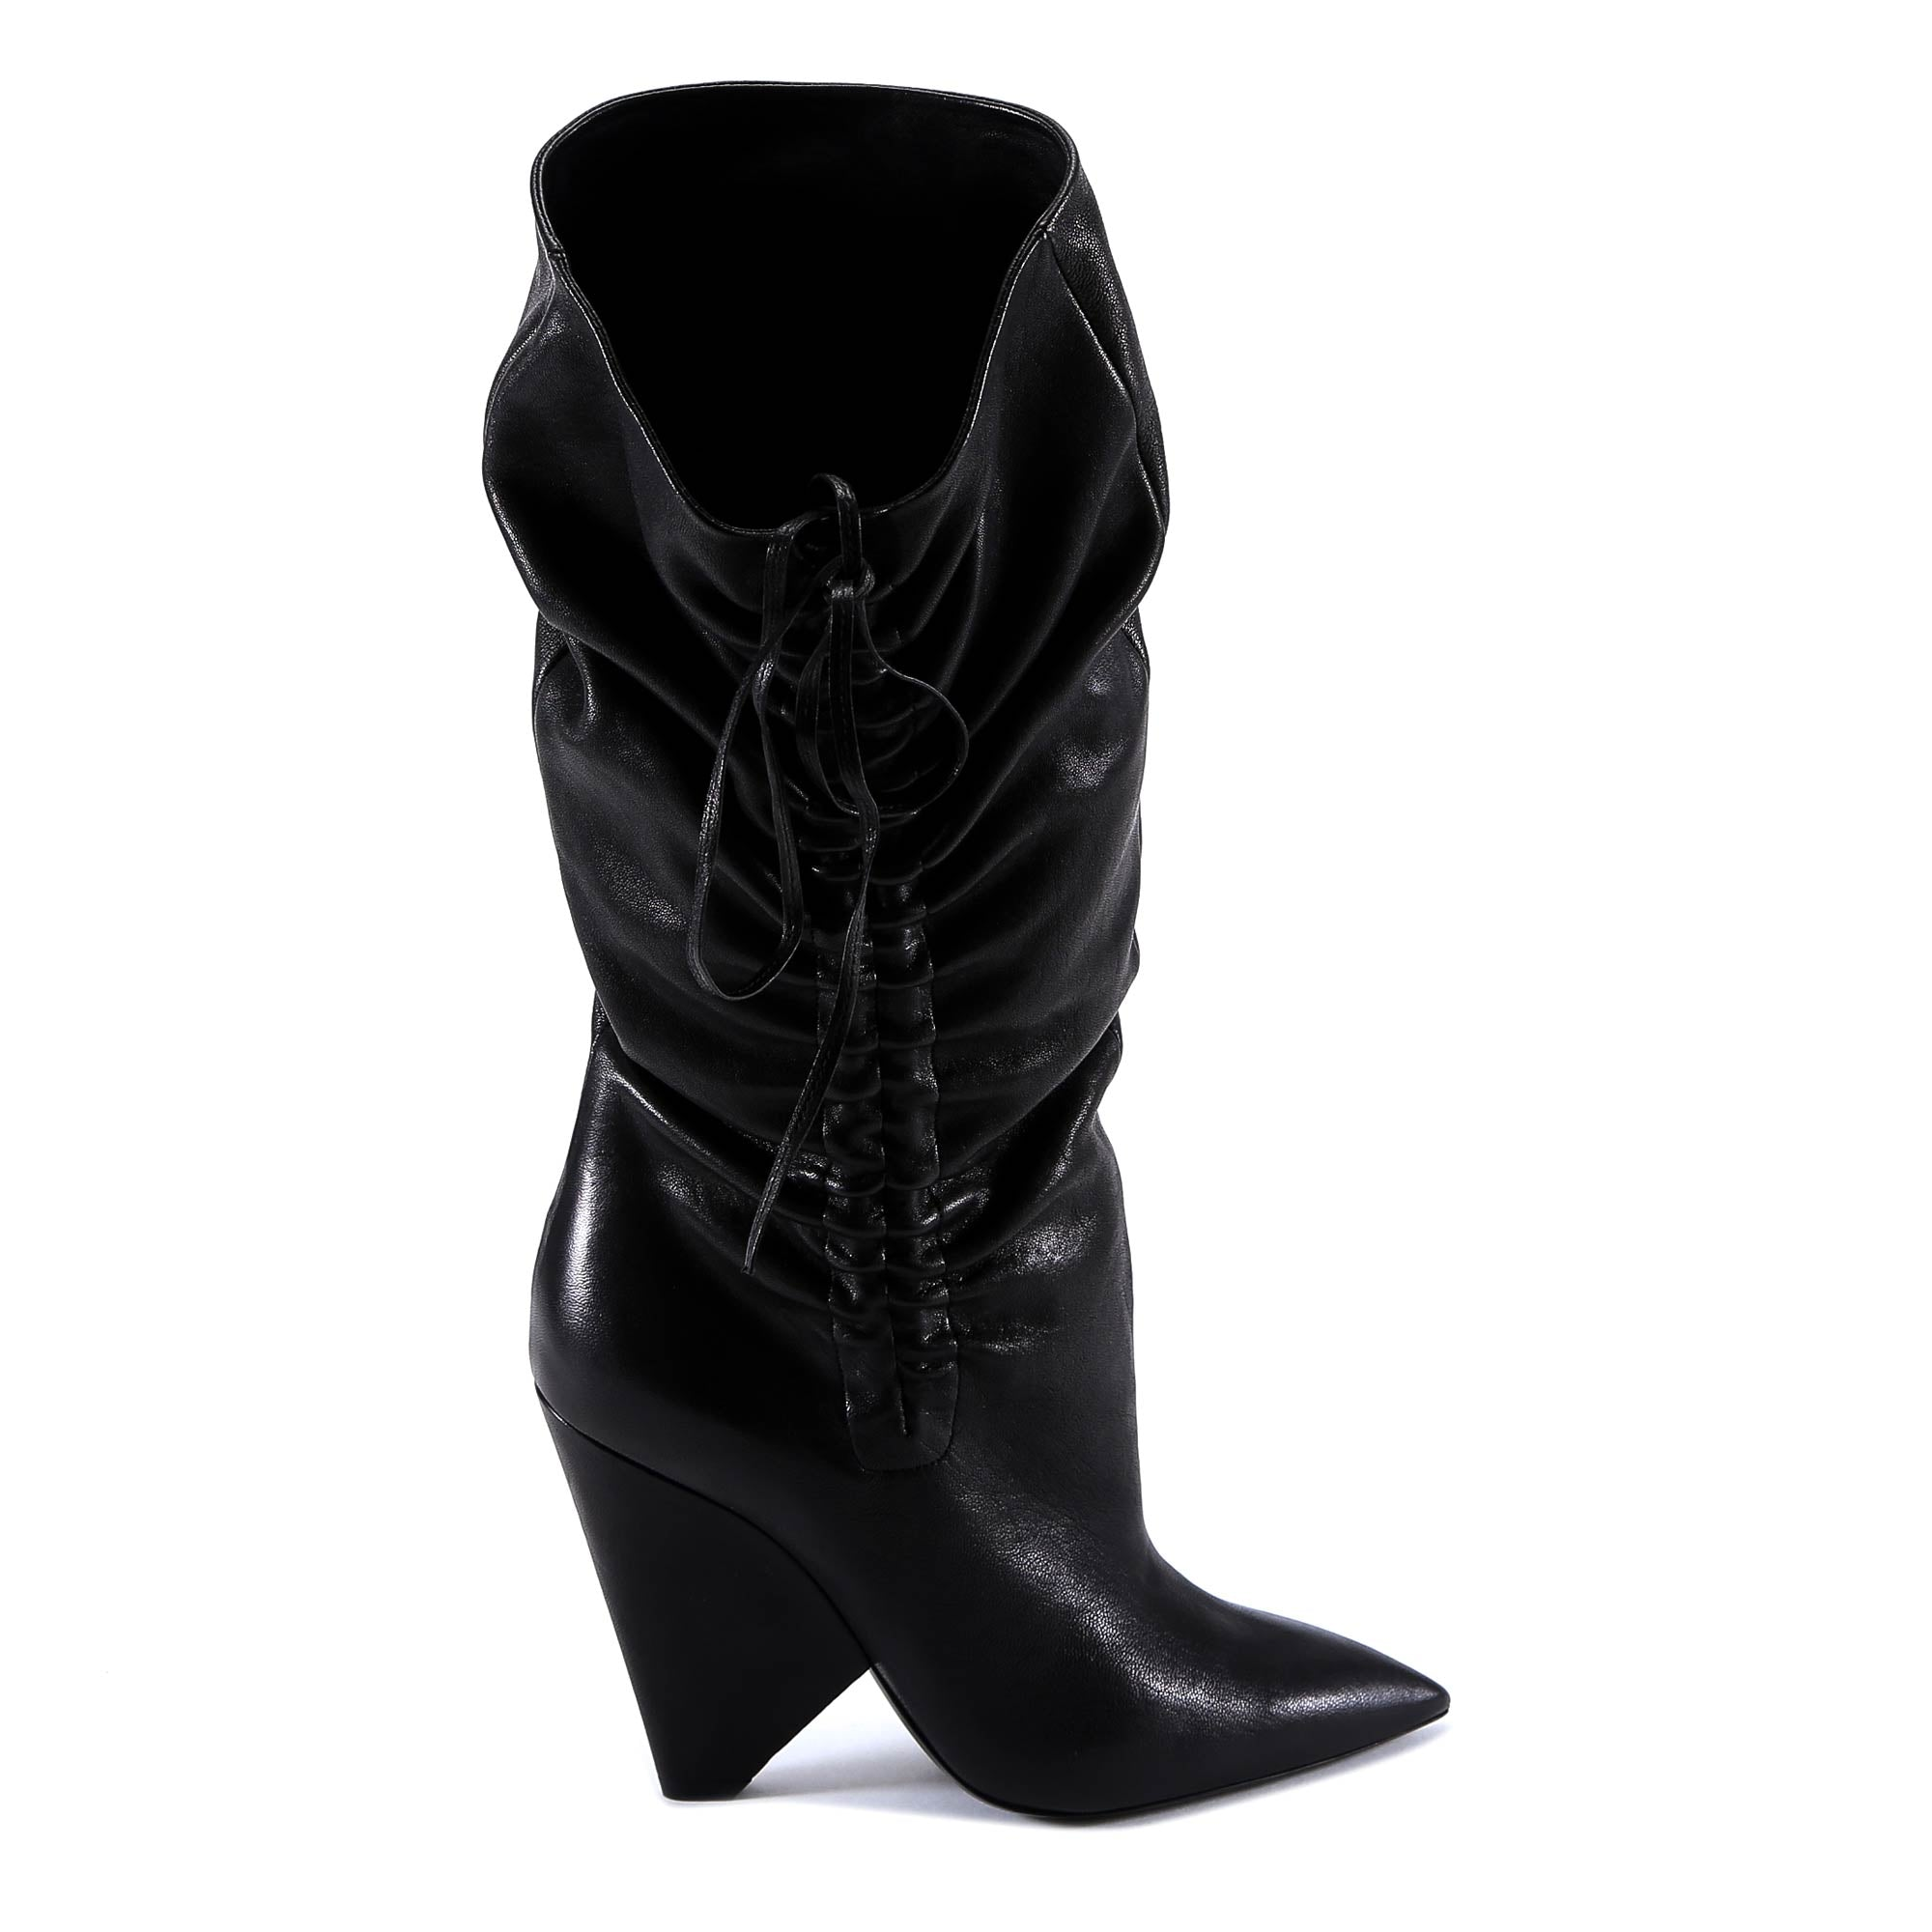 SAINT LAURENT POINTED TOE RUCHED BOOTS